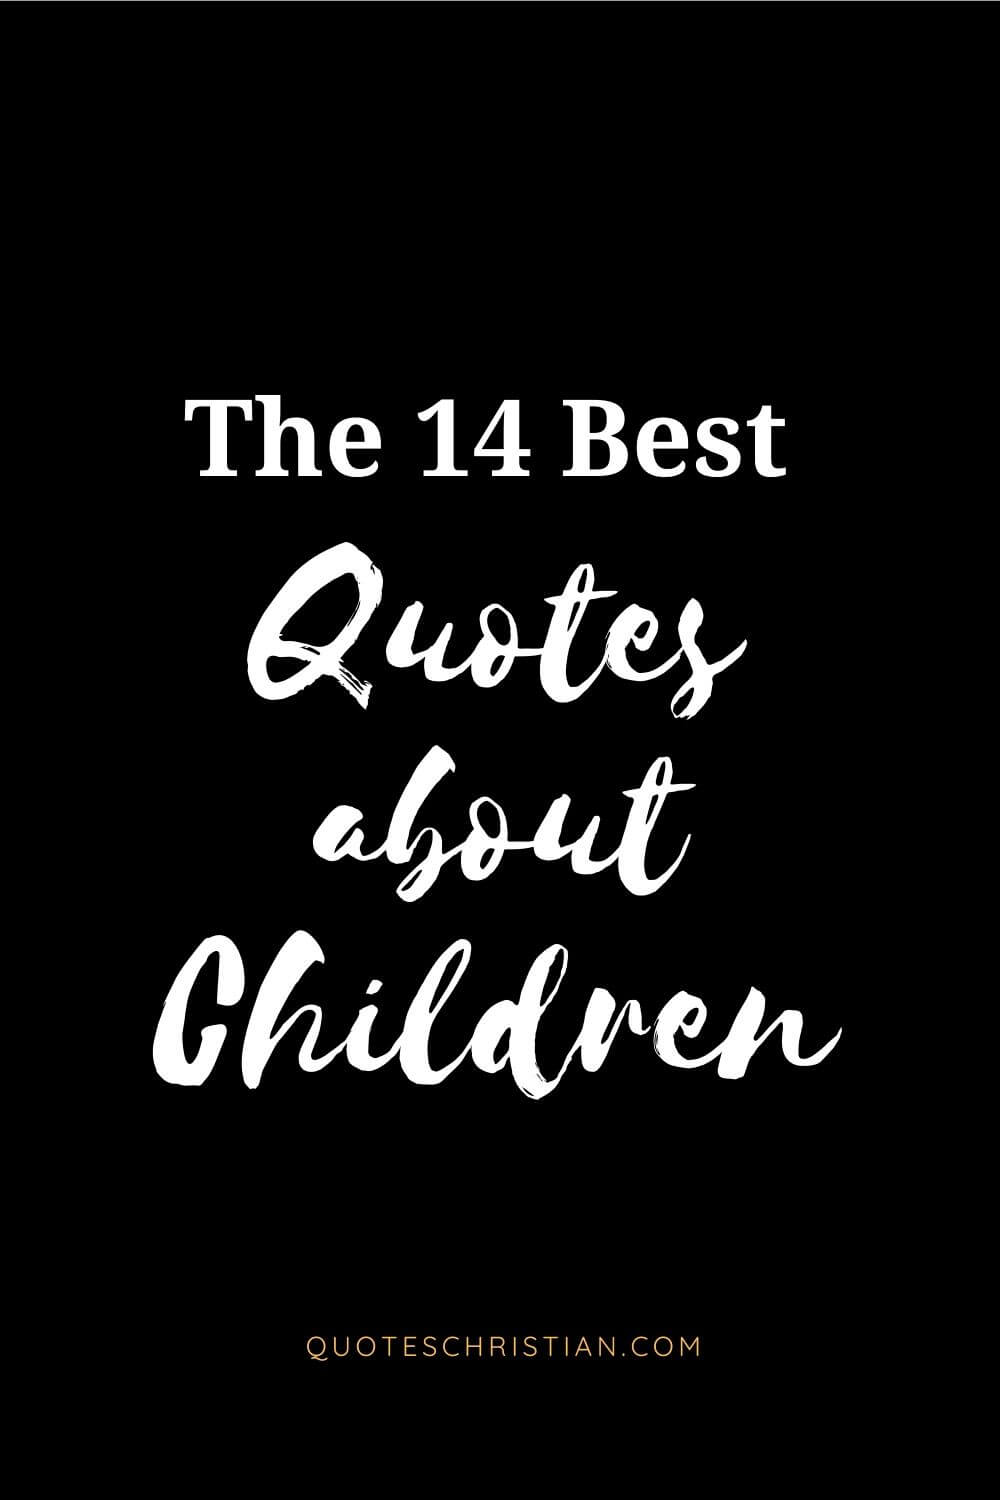 Read the collection of the best quotes about childre from quoteschristian.com below.